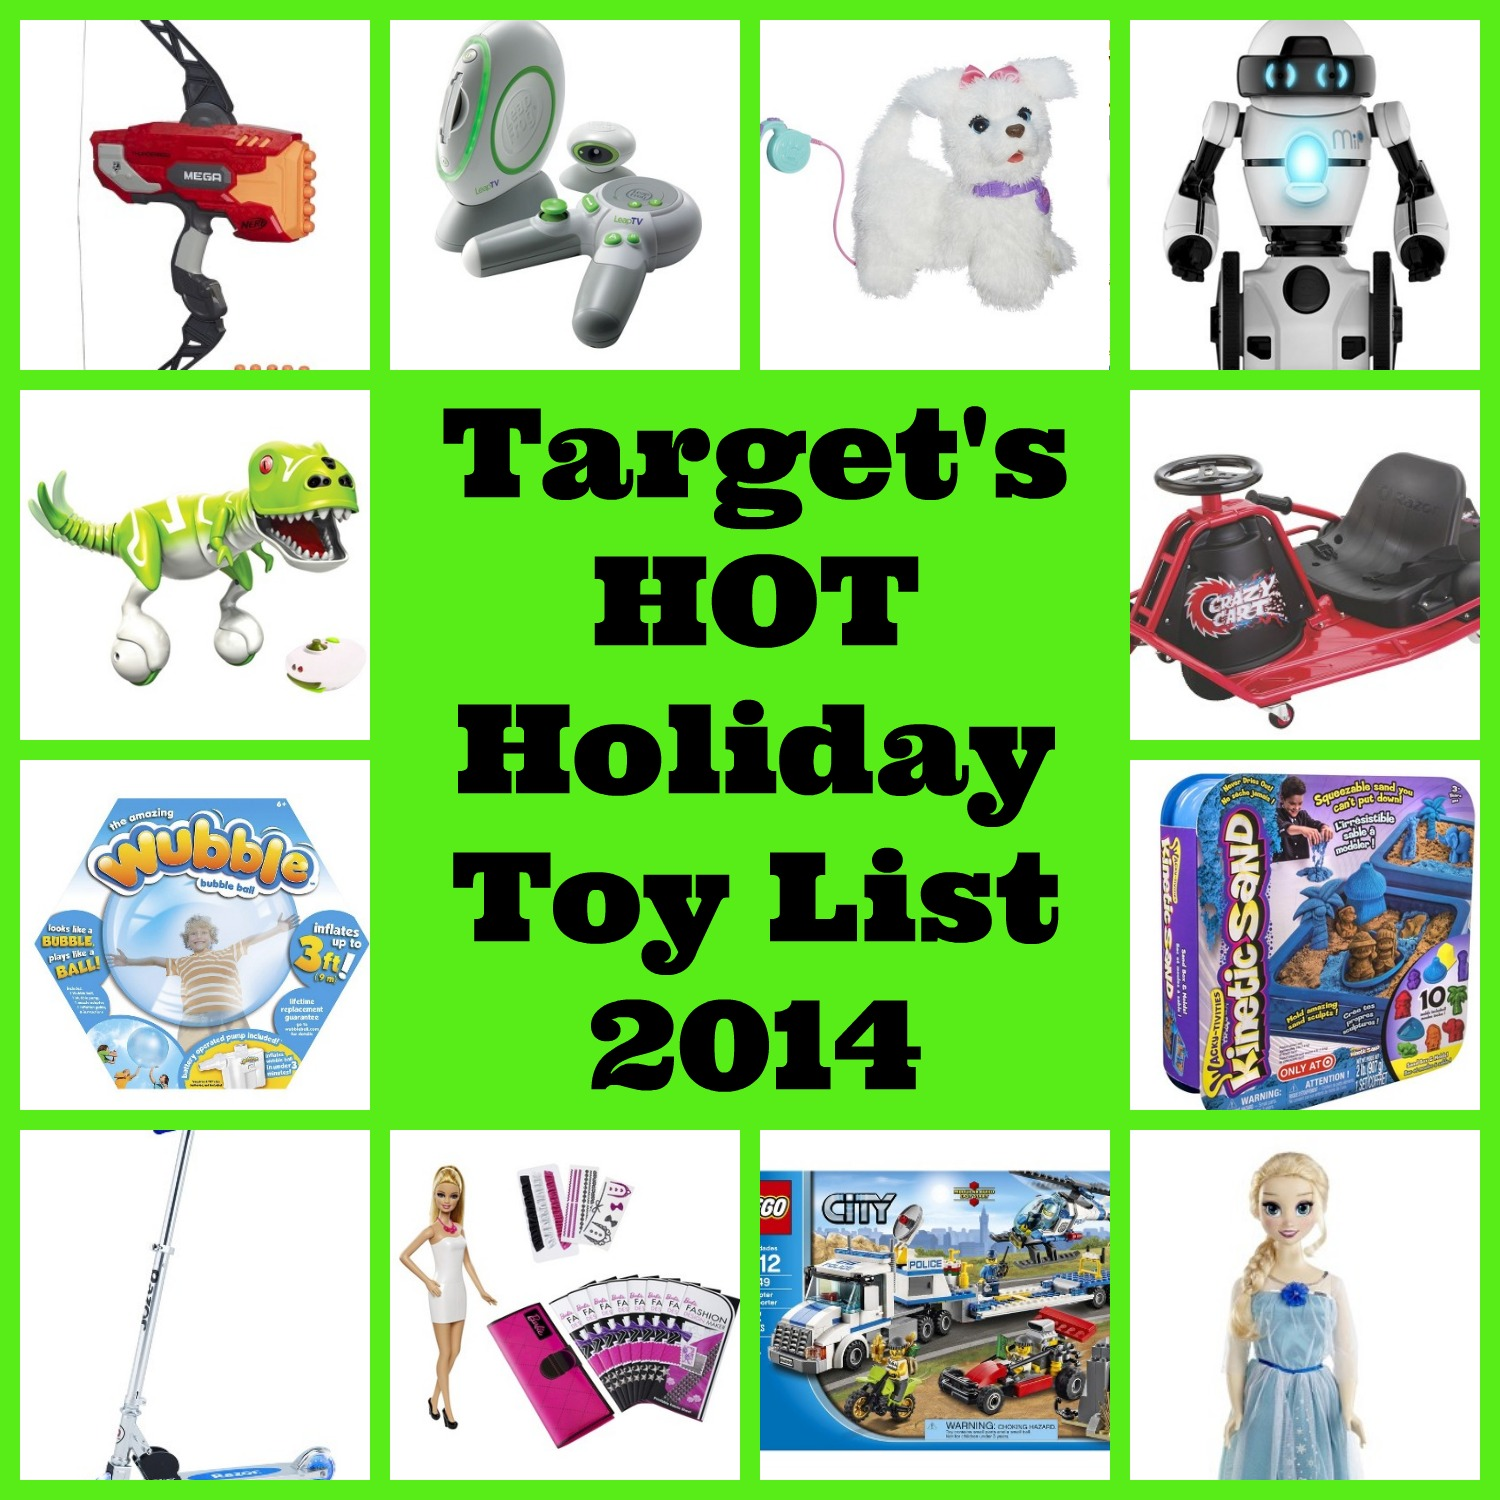 Toys For Christmas List : Target s christmas holiday hot toy wish list